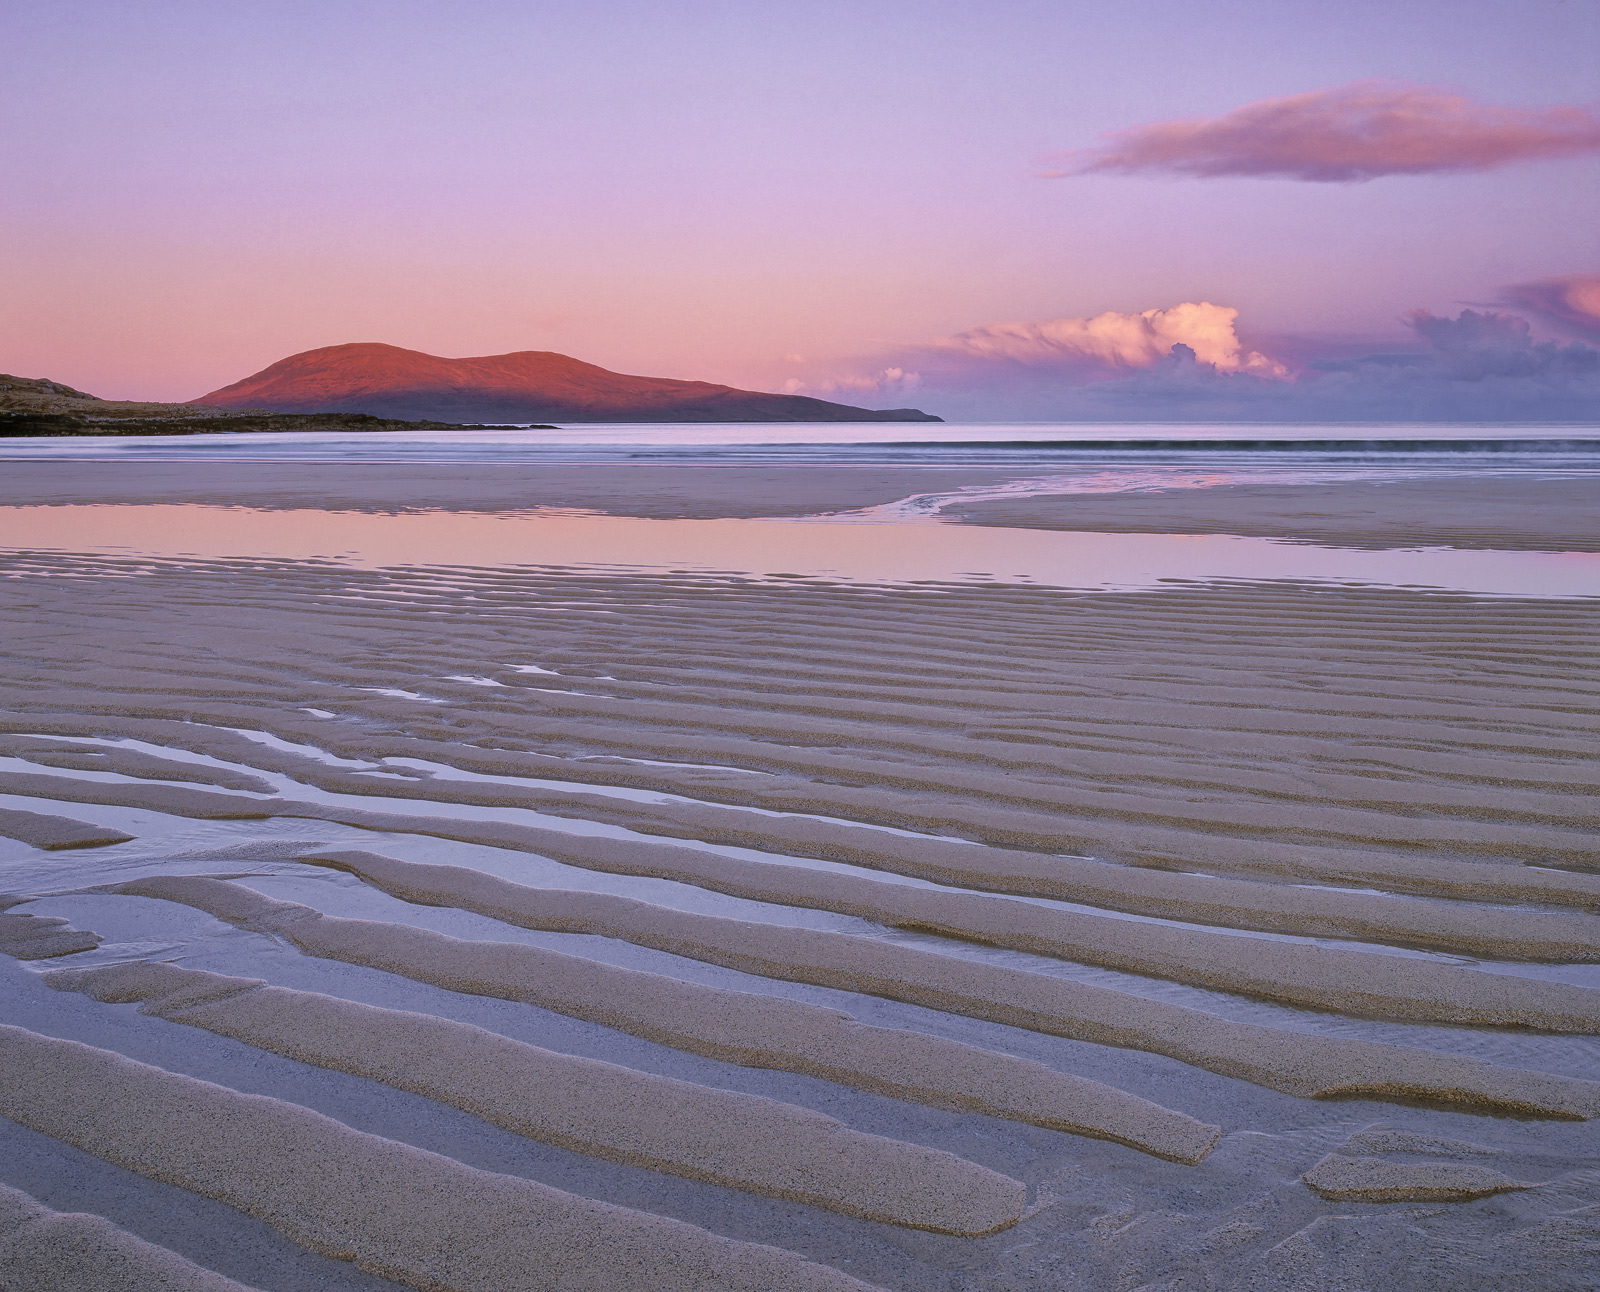 Yet another earth shatteringly beautiful 30 second window on the gorgeously furrowed Harris beach of Traigh Lar a few seconds...